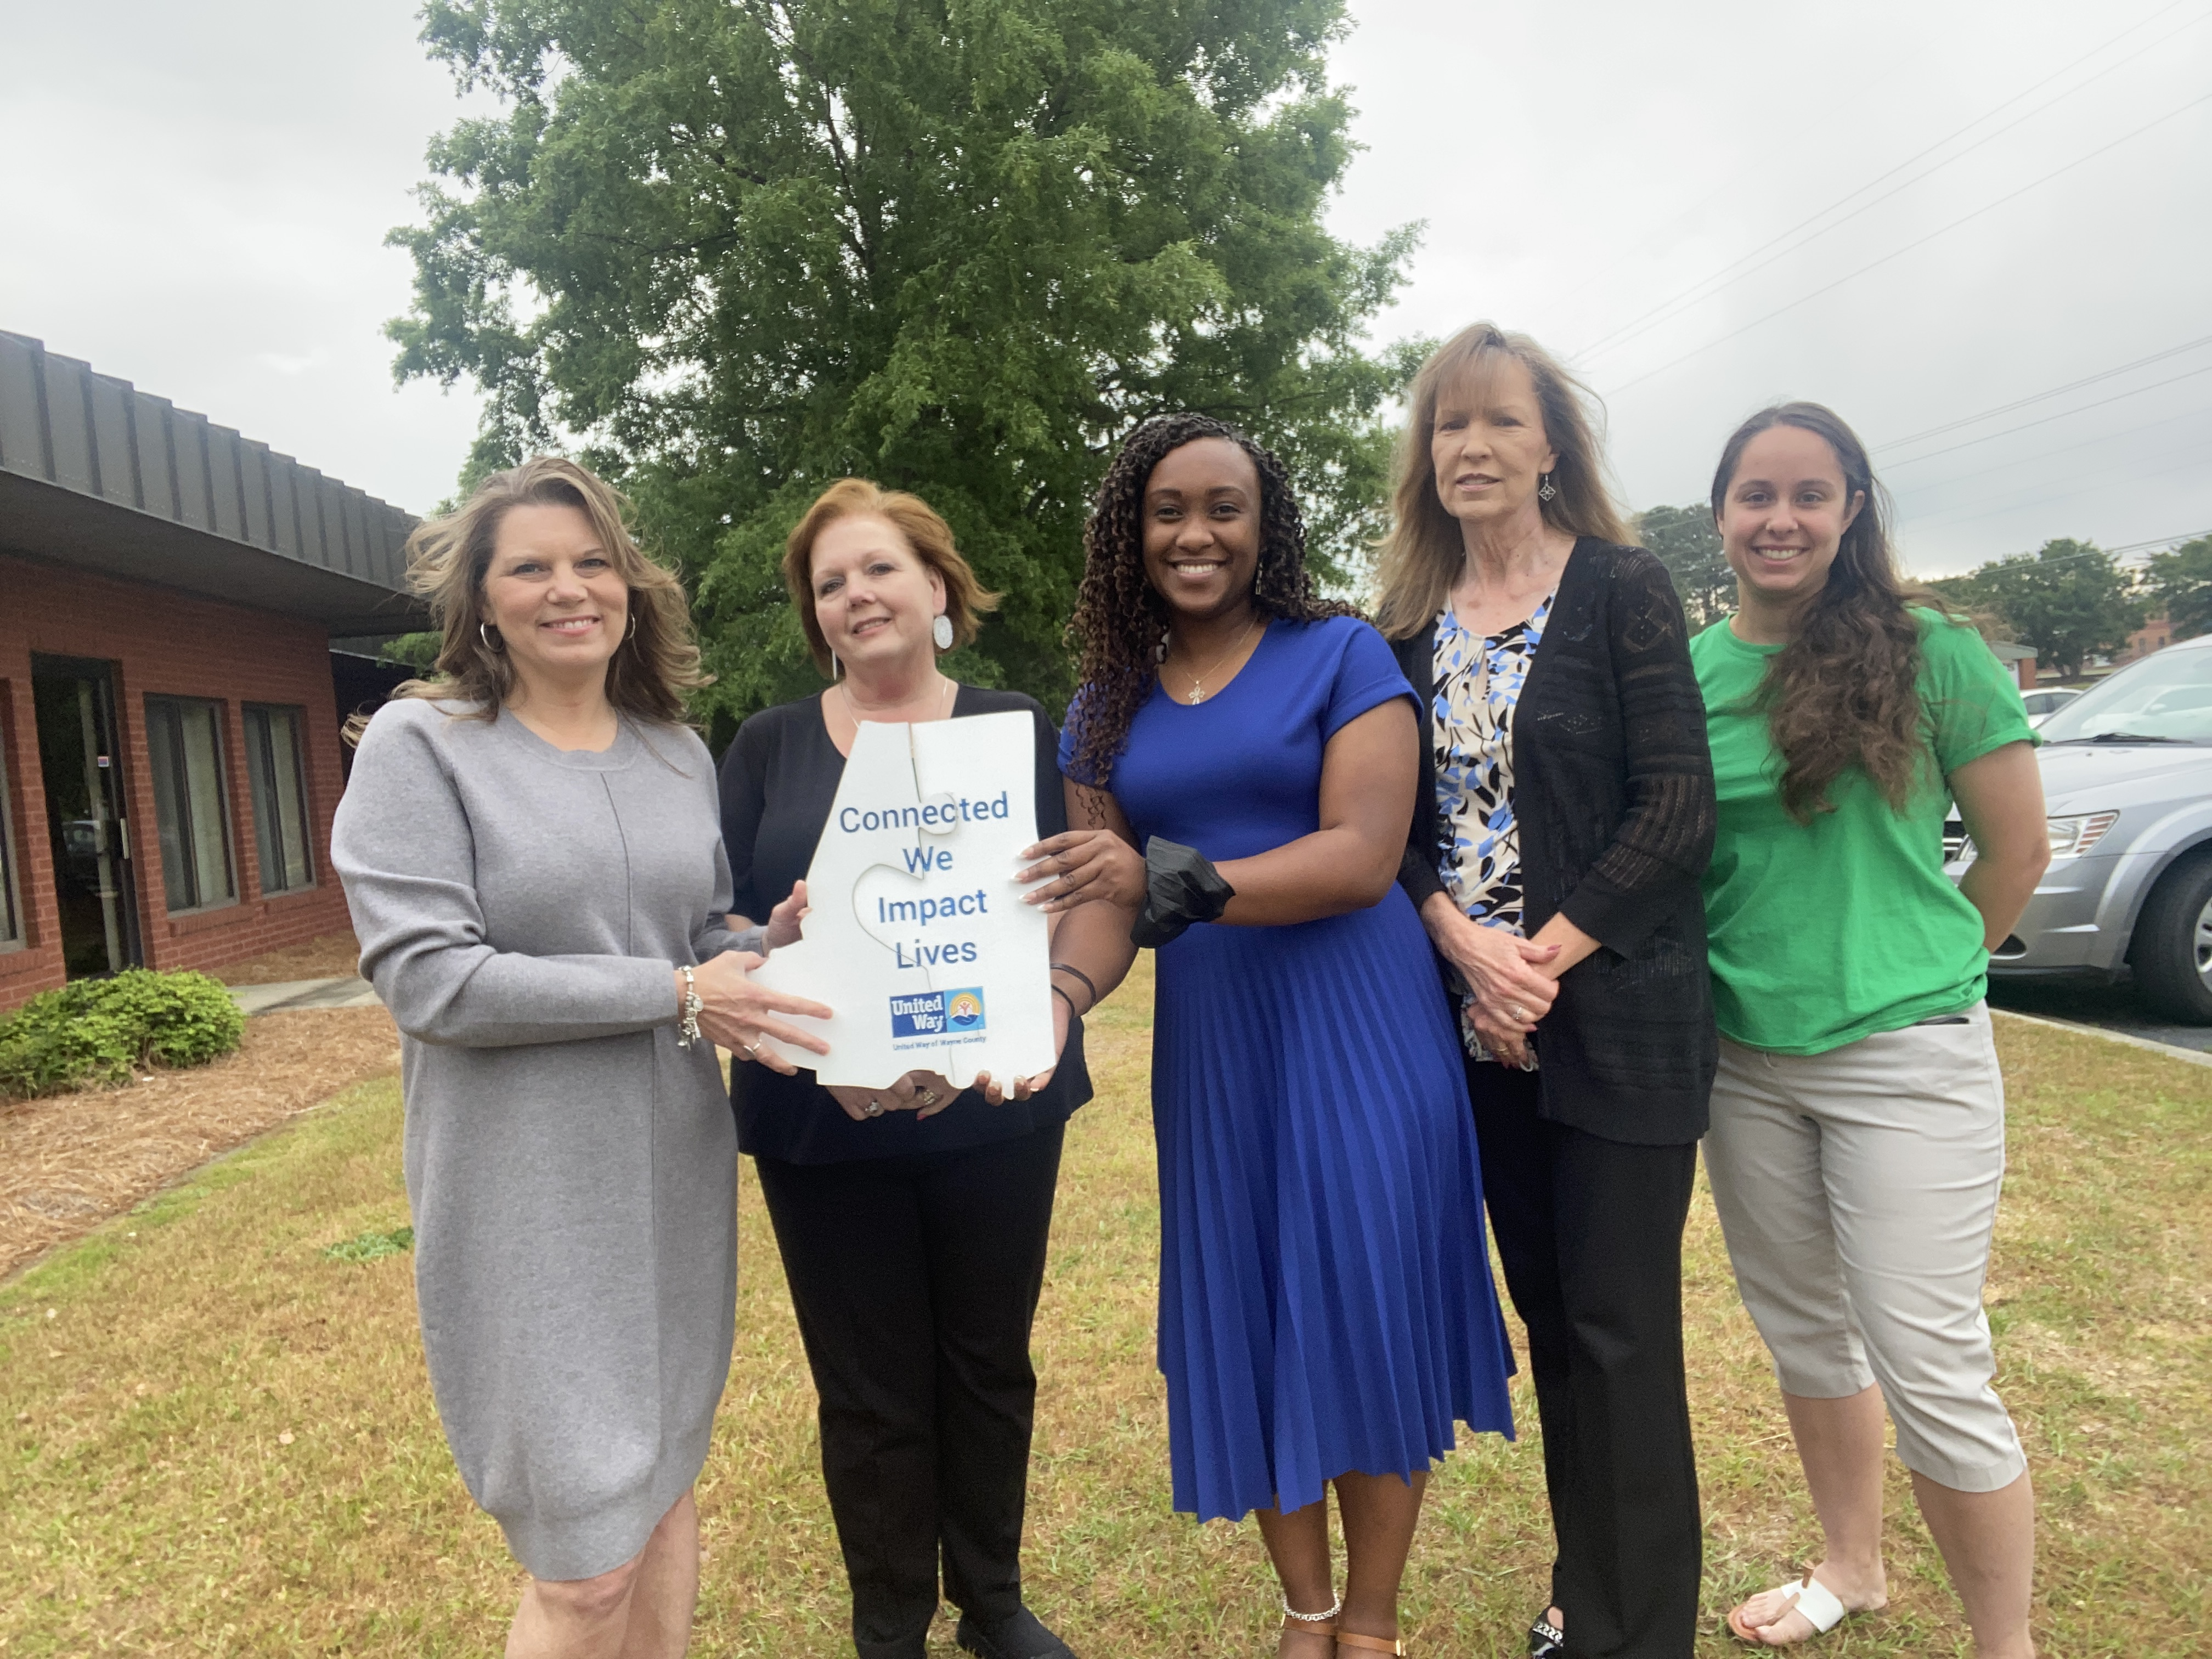 UNITED WAY: Connections Improve Lives